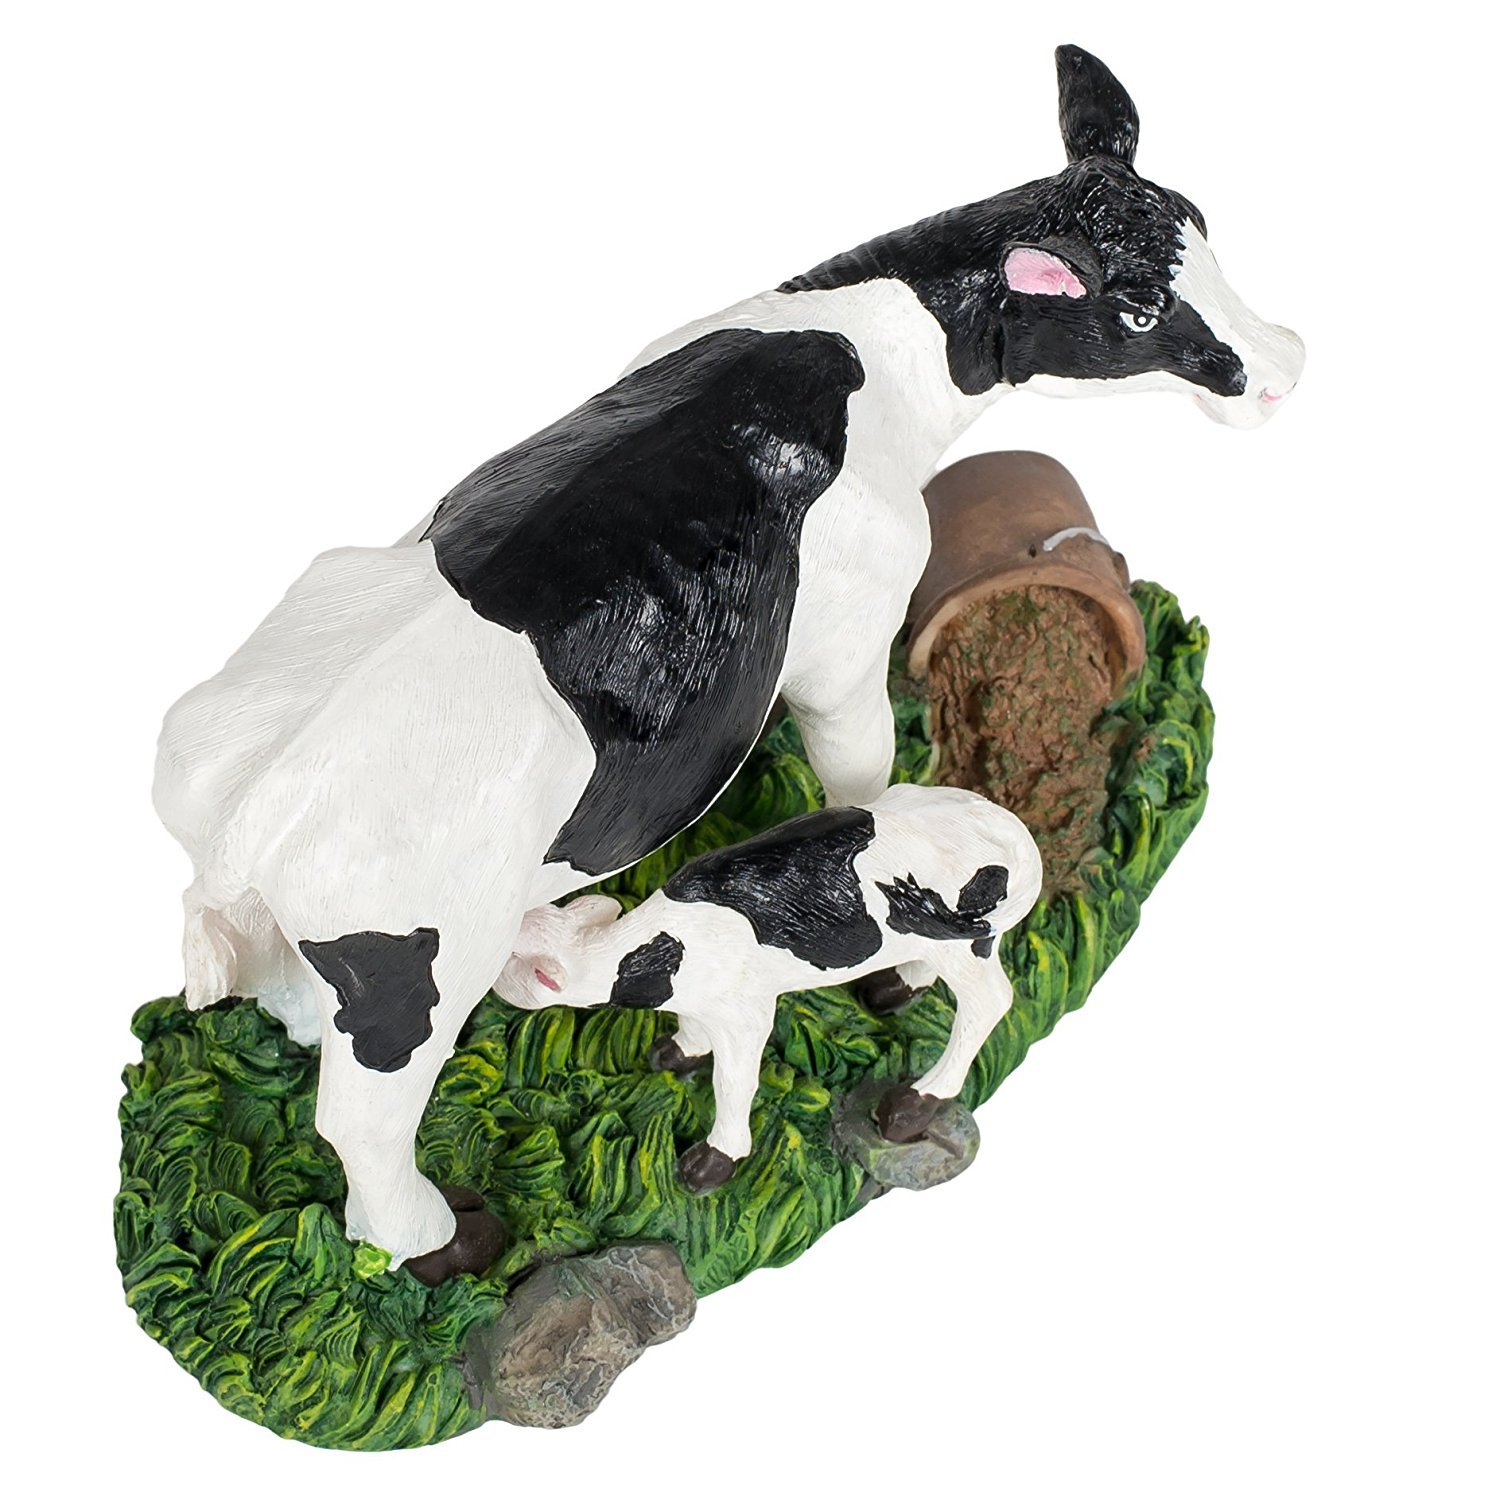 Dairy Cow and Calf 4 x 6 inch Resin Stone Decorative Table Top Figurine